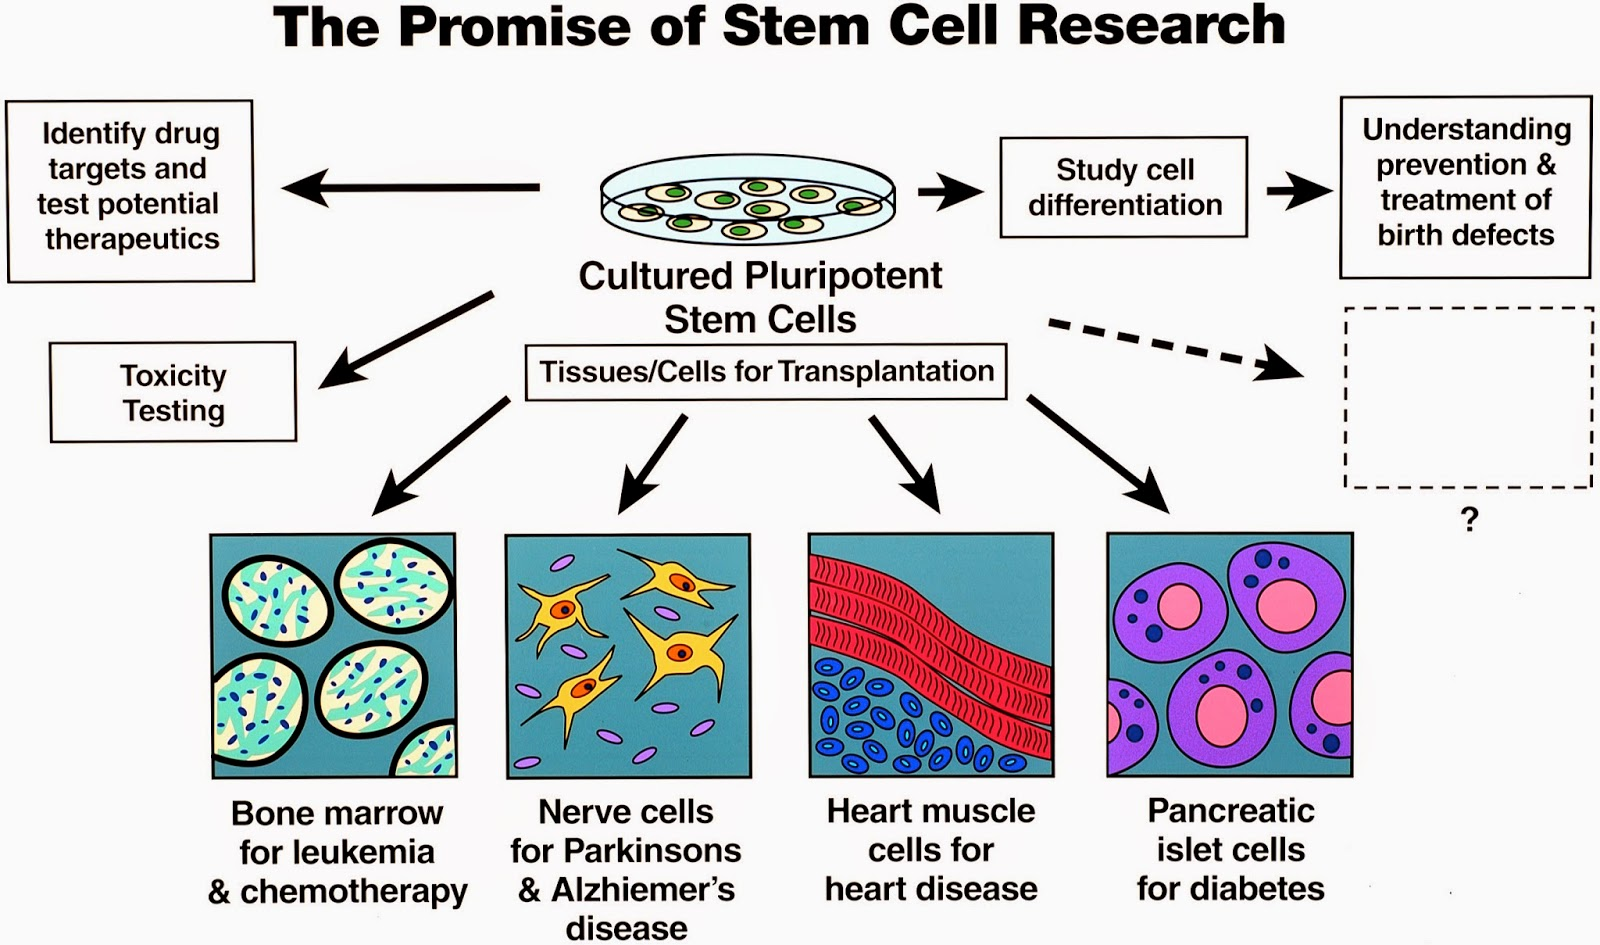 """the killing of a living human embryo to obtain that stem cell Obligations to persons and other living things the embryo as  culture the resulting stem cells, and obtain  """"ethical issues in human stem cell."""